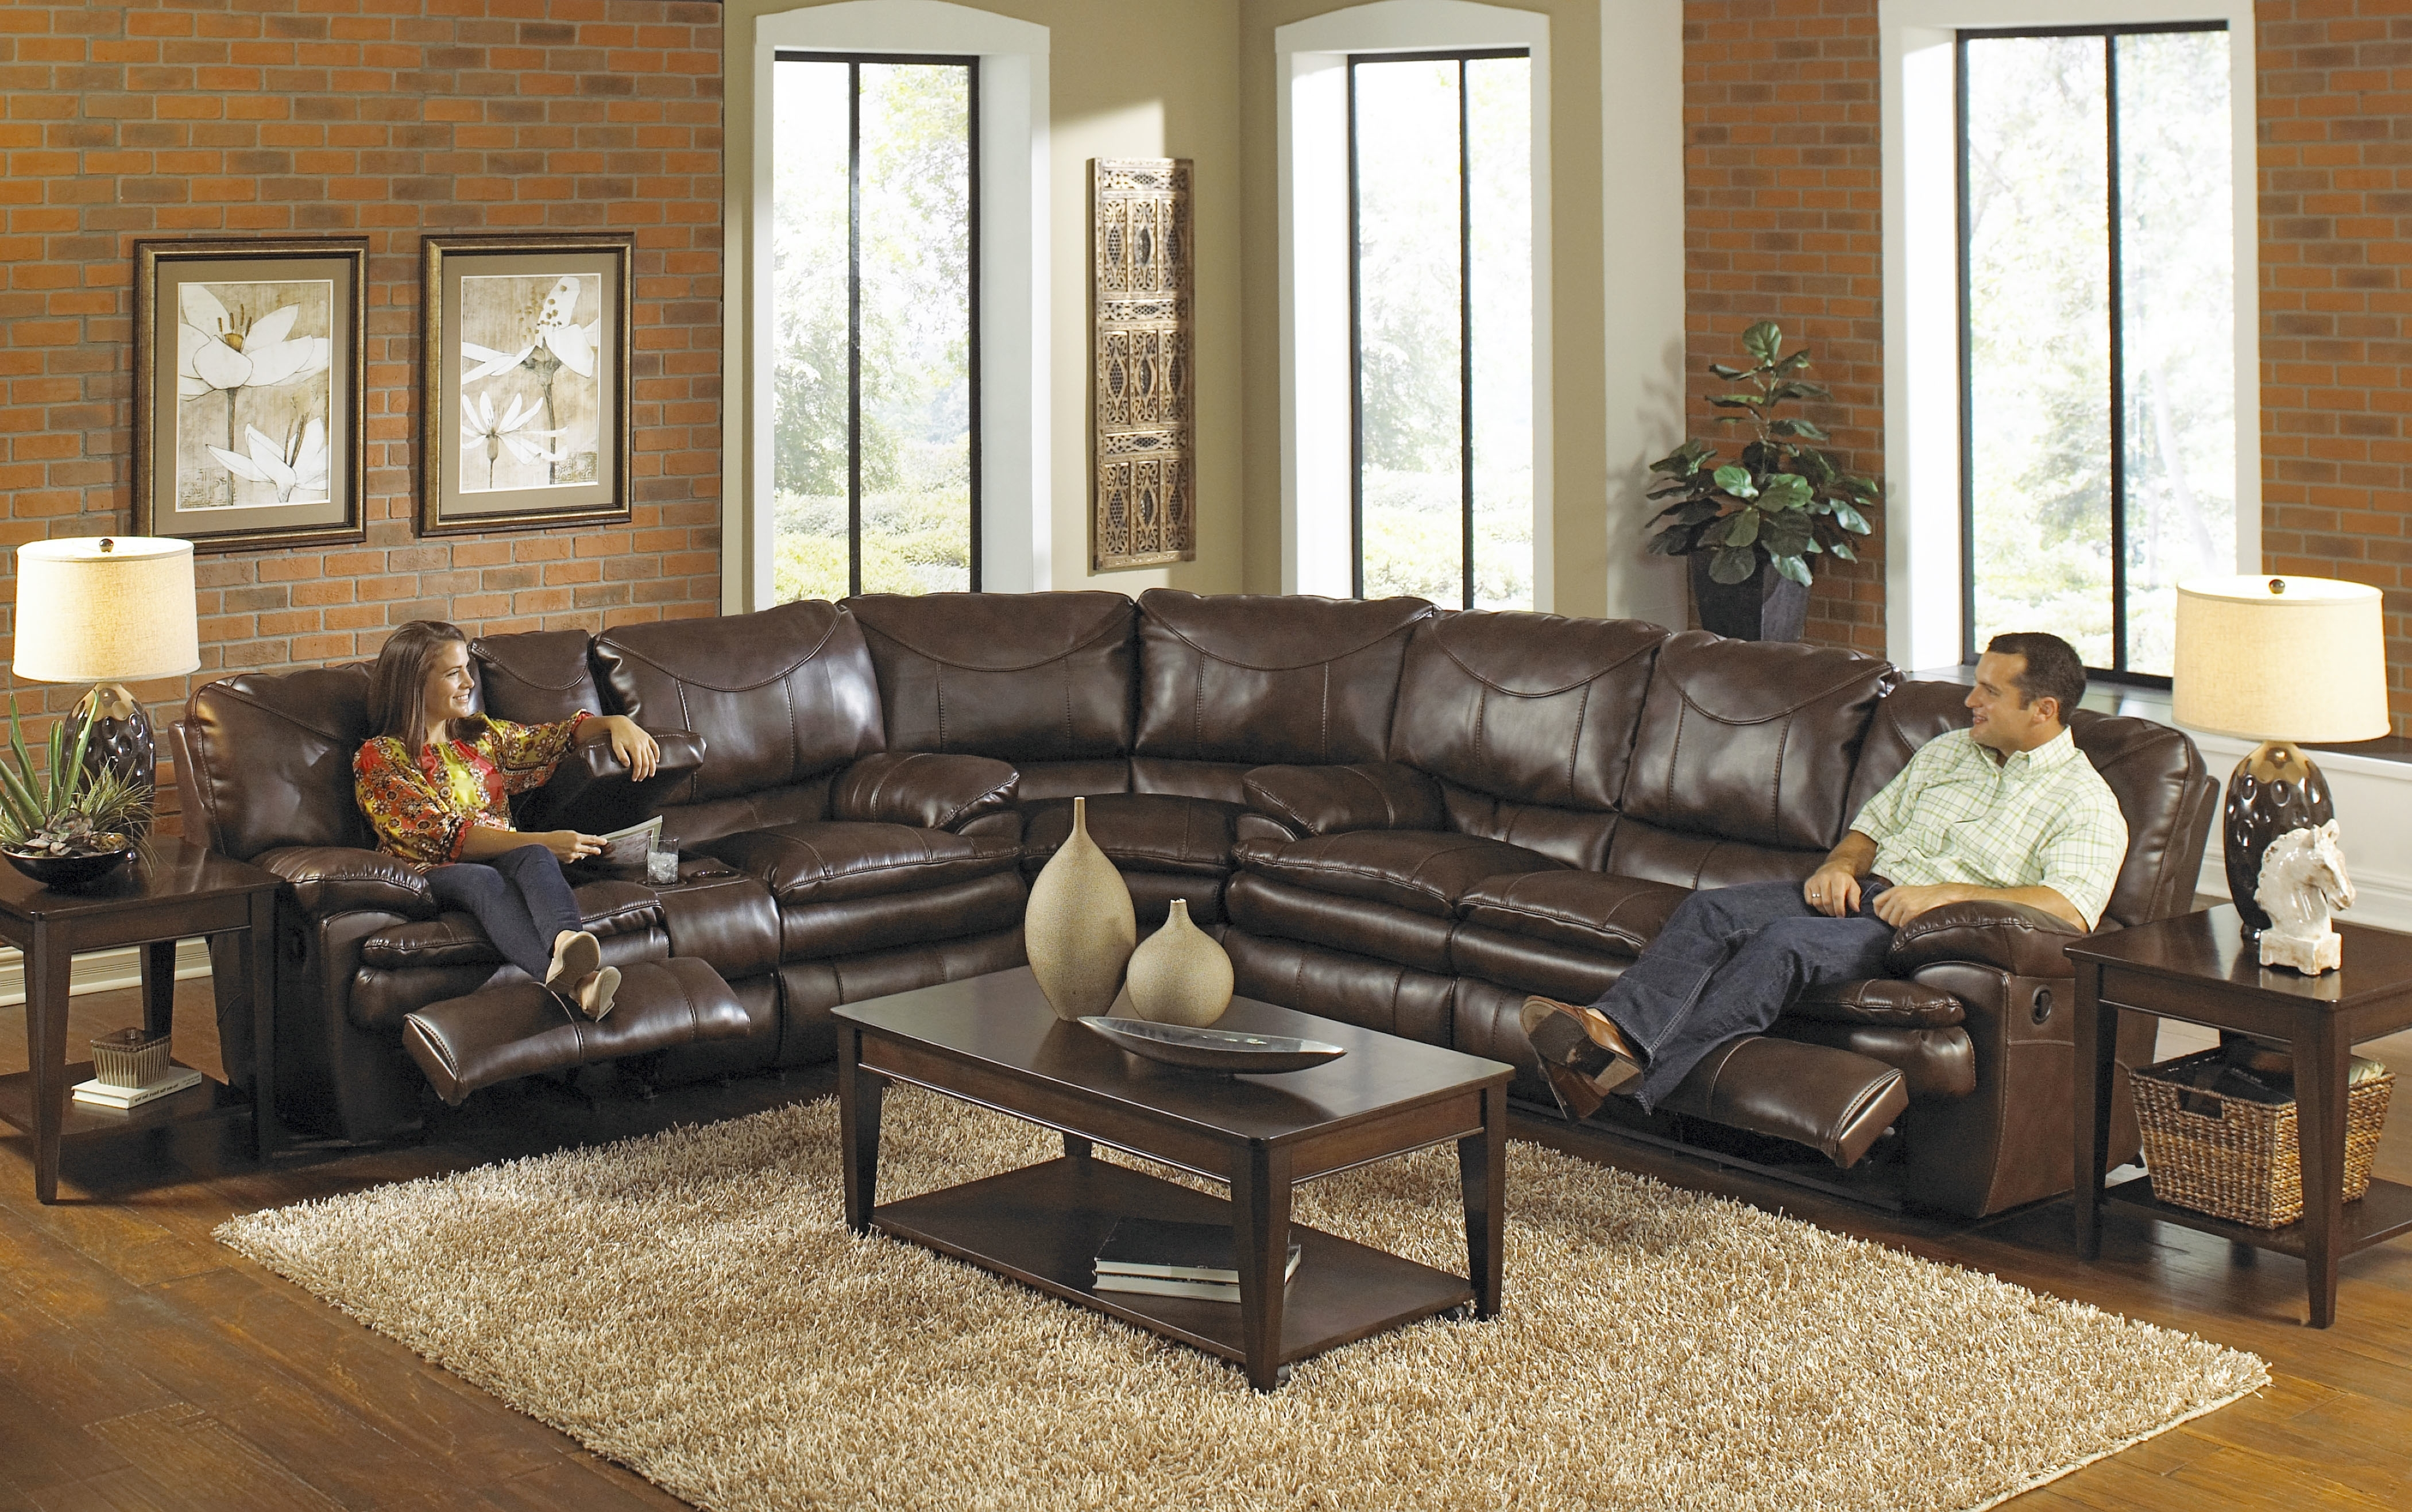 Virginia Sectional Sofas Pertaining To Fashionable Delivered Sofa With Chaise And Recliner Buy Large Sectional Sofas (View 15 of 20)